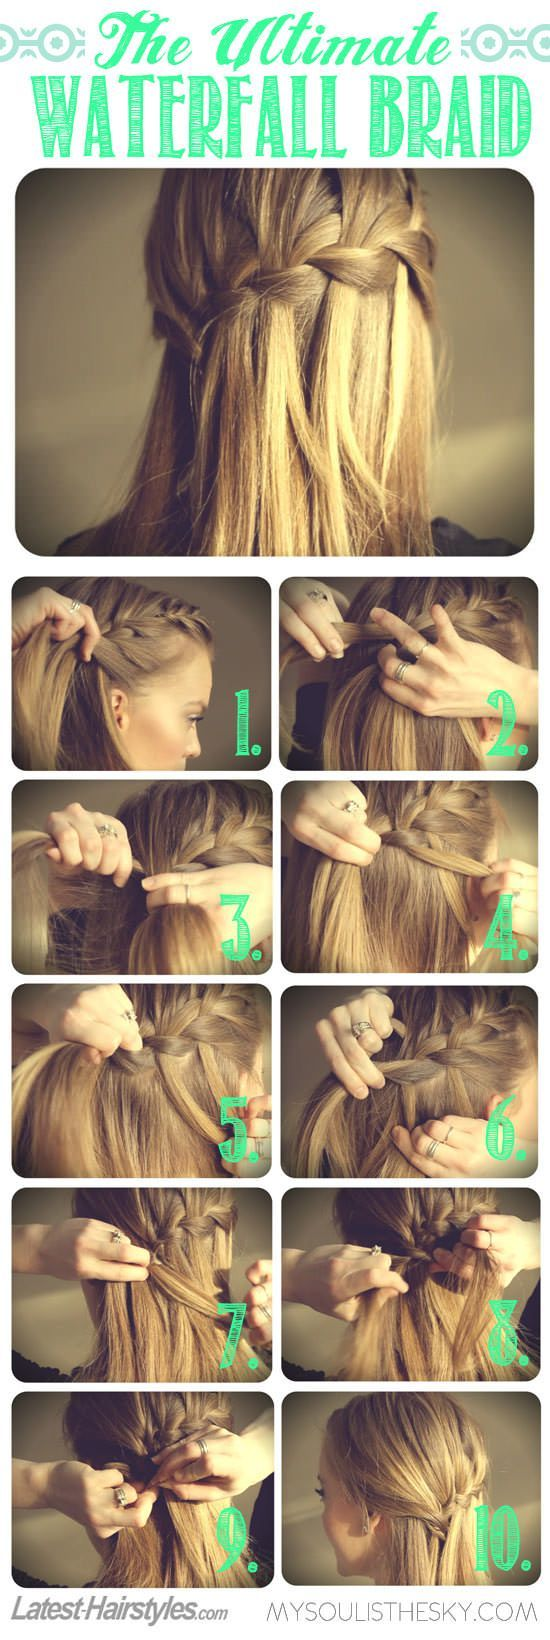 Waterfall braid braid tutorials diy hair and tutorials